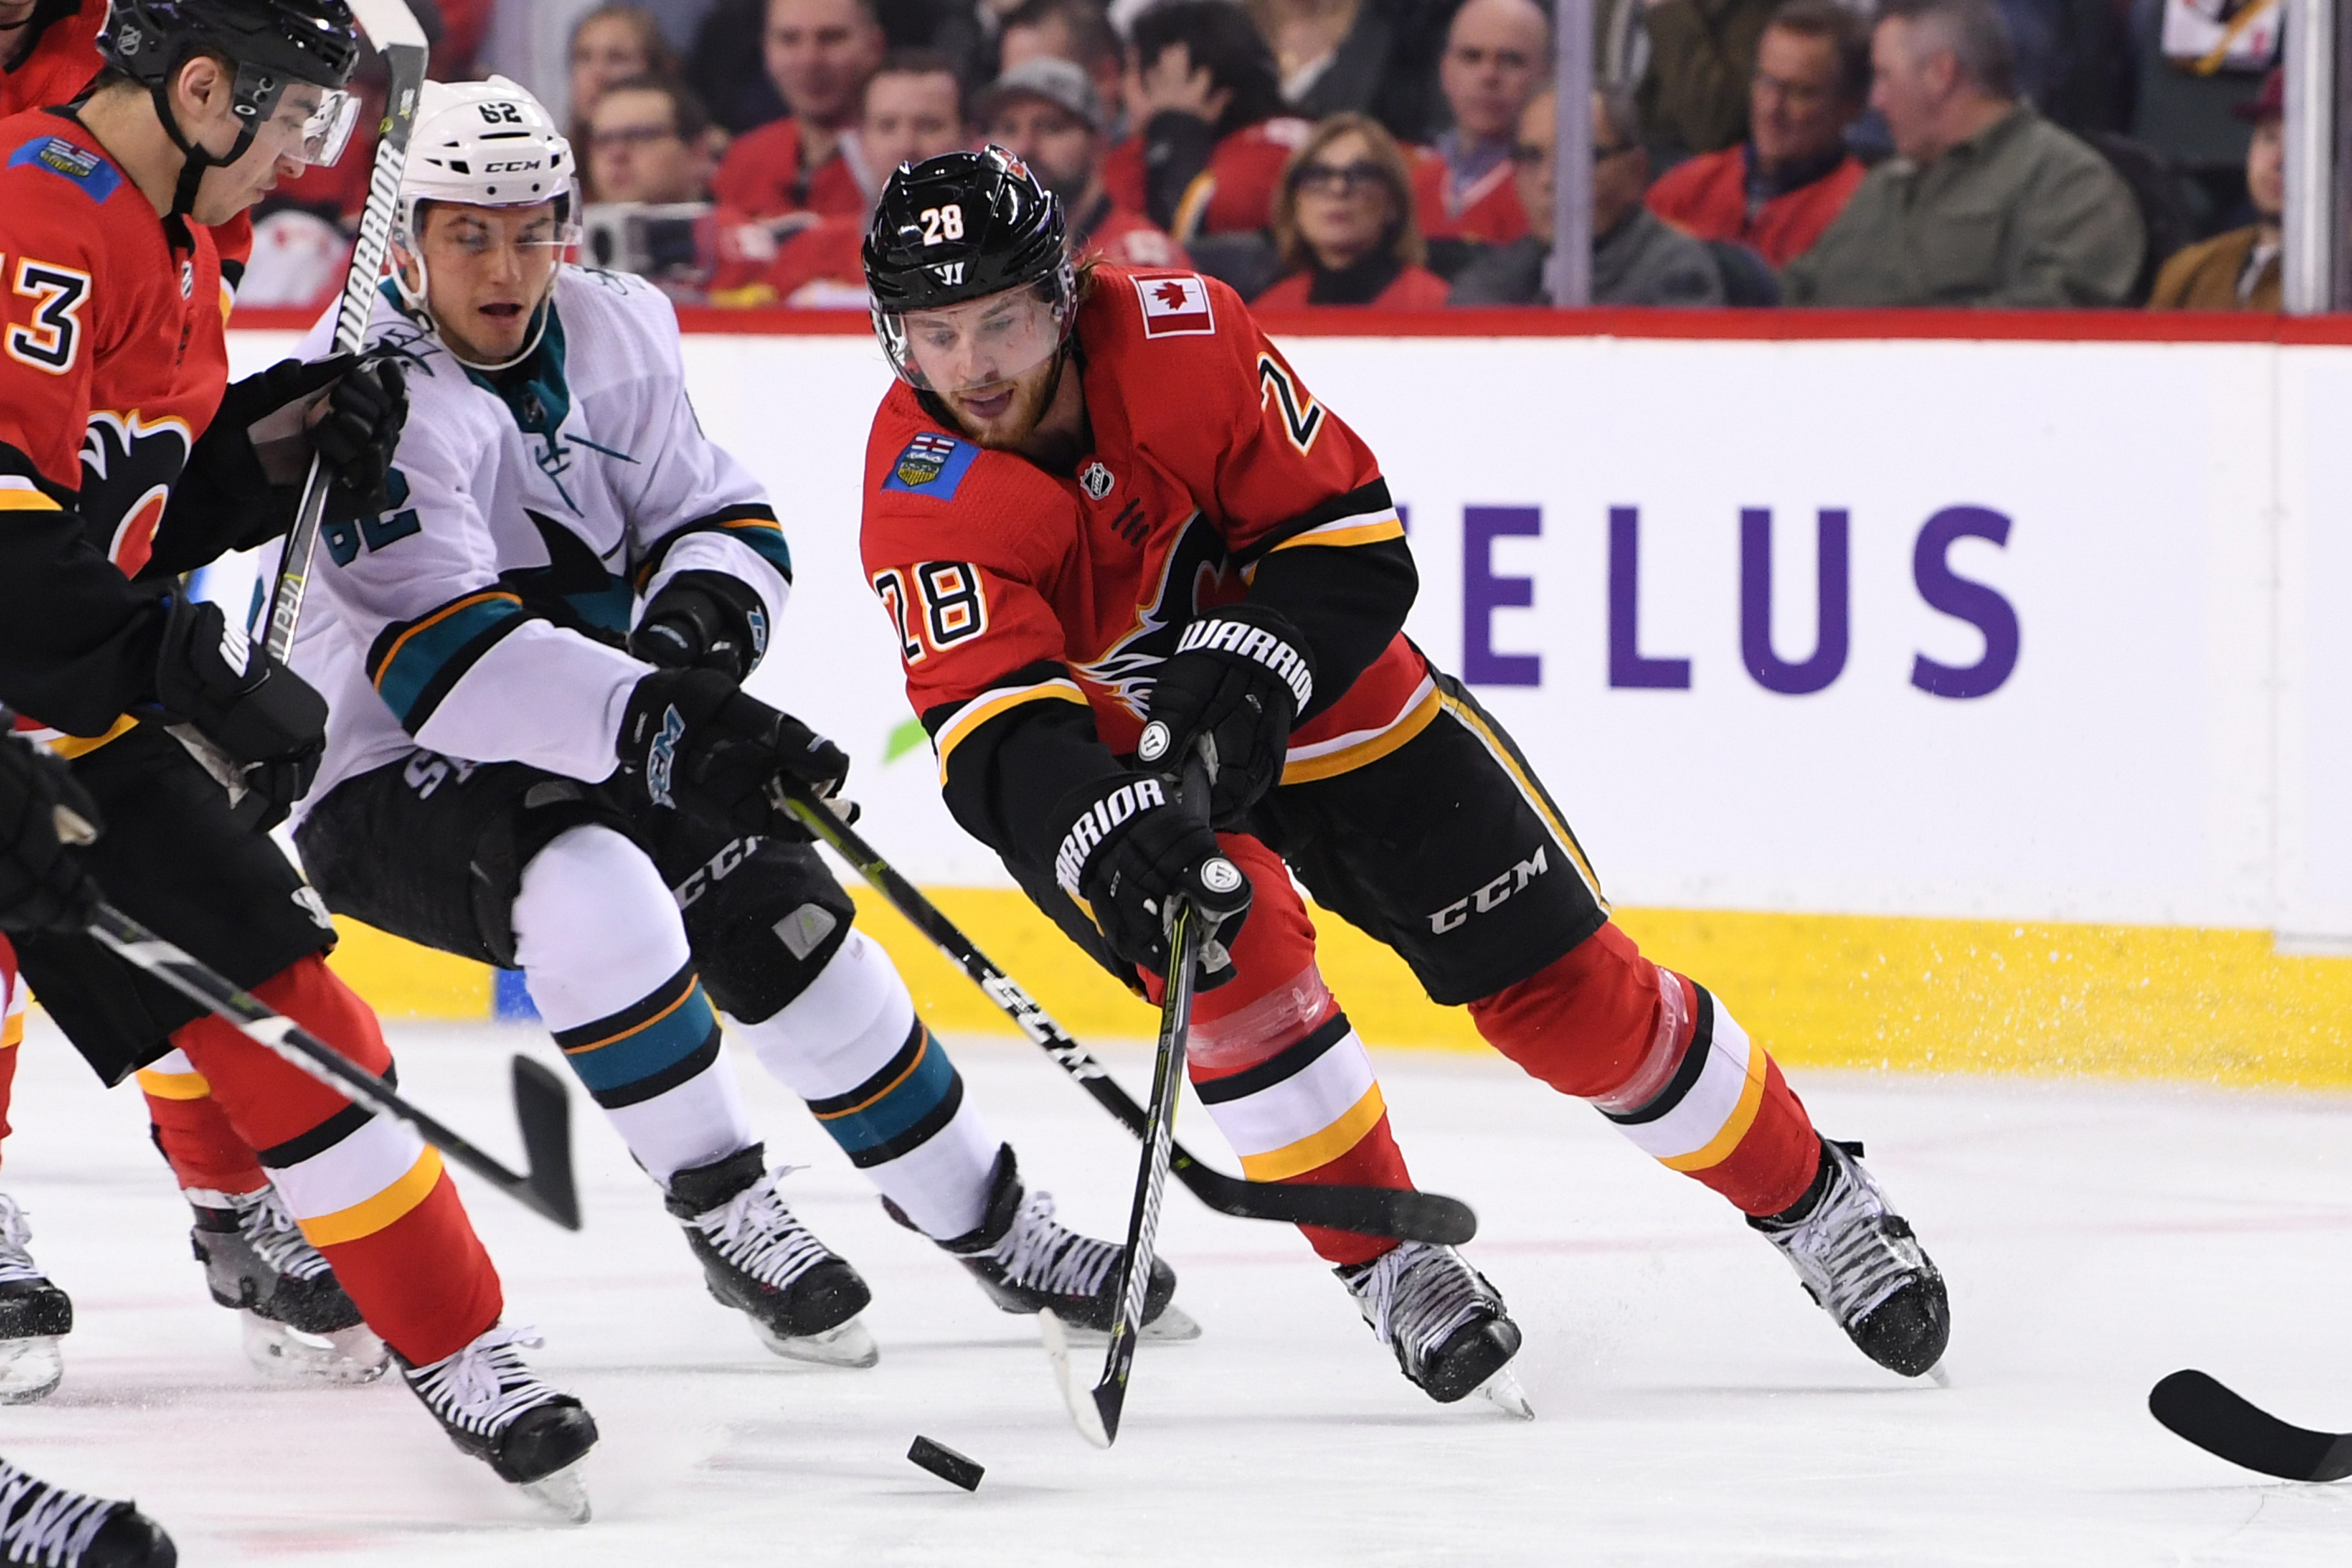 Feb 7, 2019; Calgary, Alberta, CAN; Calgary Flames center Elias Lindholm (28) skates the puck up against San Jose Sharks right wing Kevin Labanc (62) during the first period at Scotiabank Saddledome. Mandatory Credit: Candice Ward